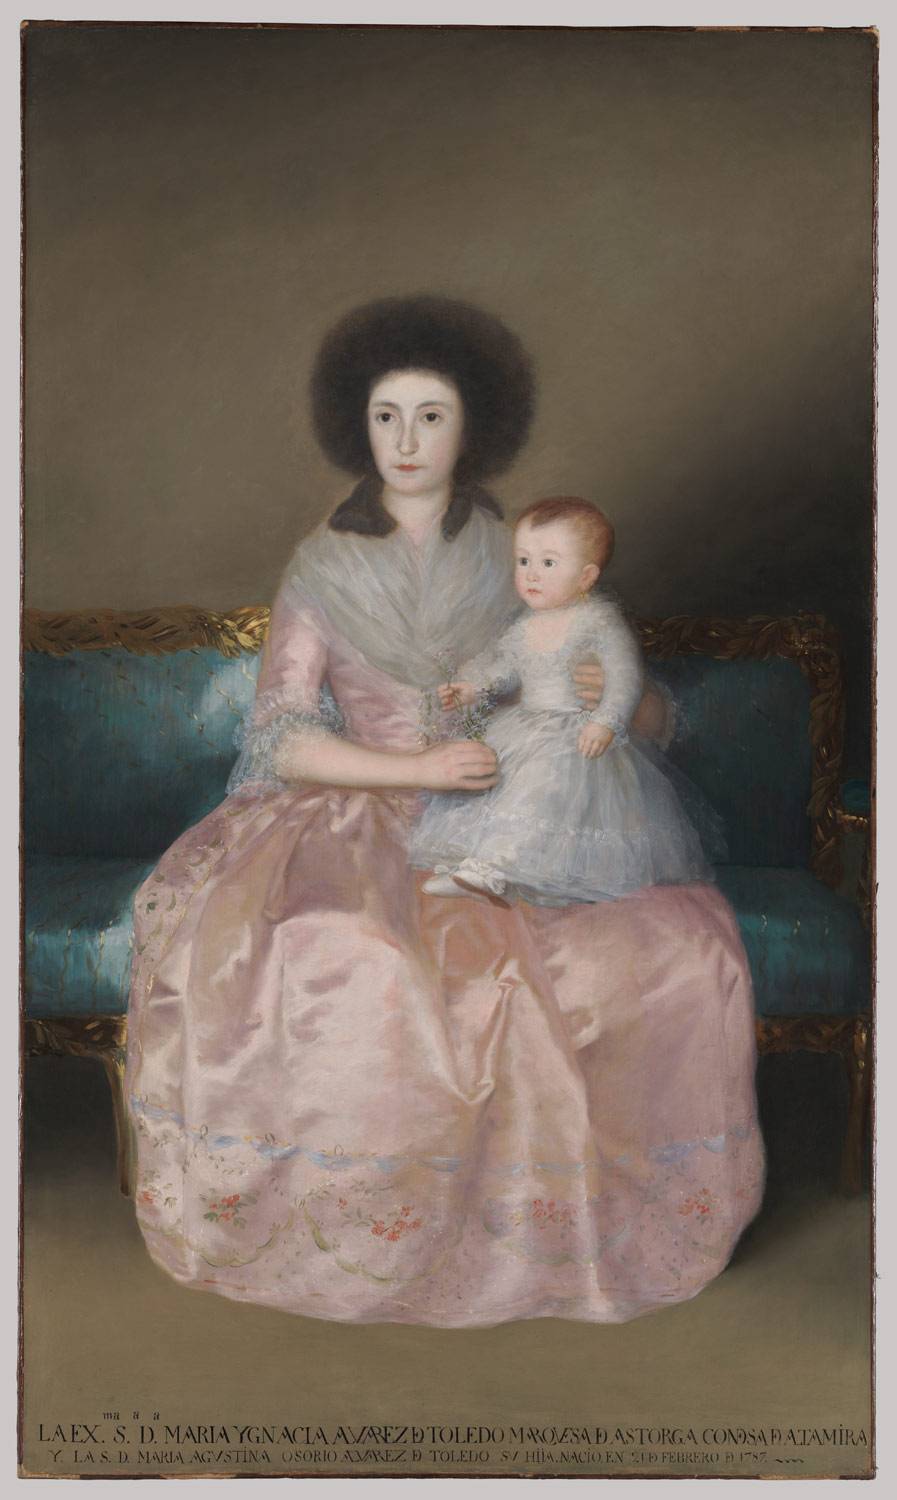 Condesa de Altamira and Her Daughter, Maria Agustina